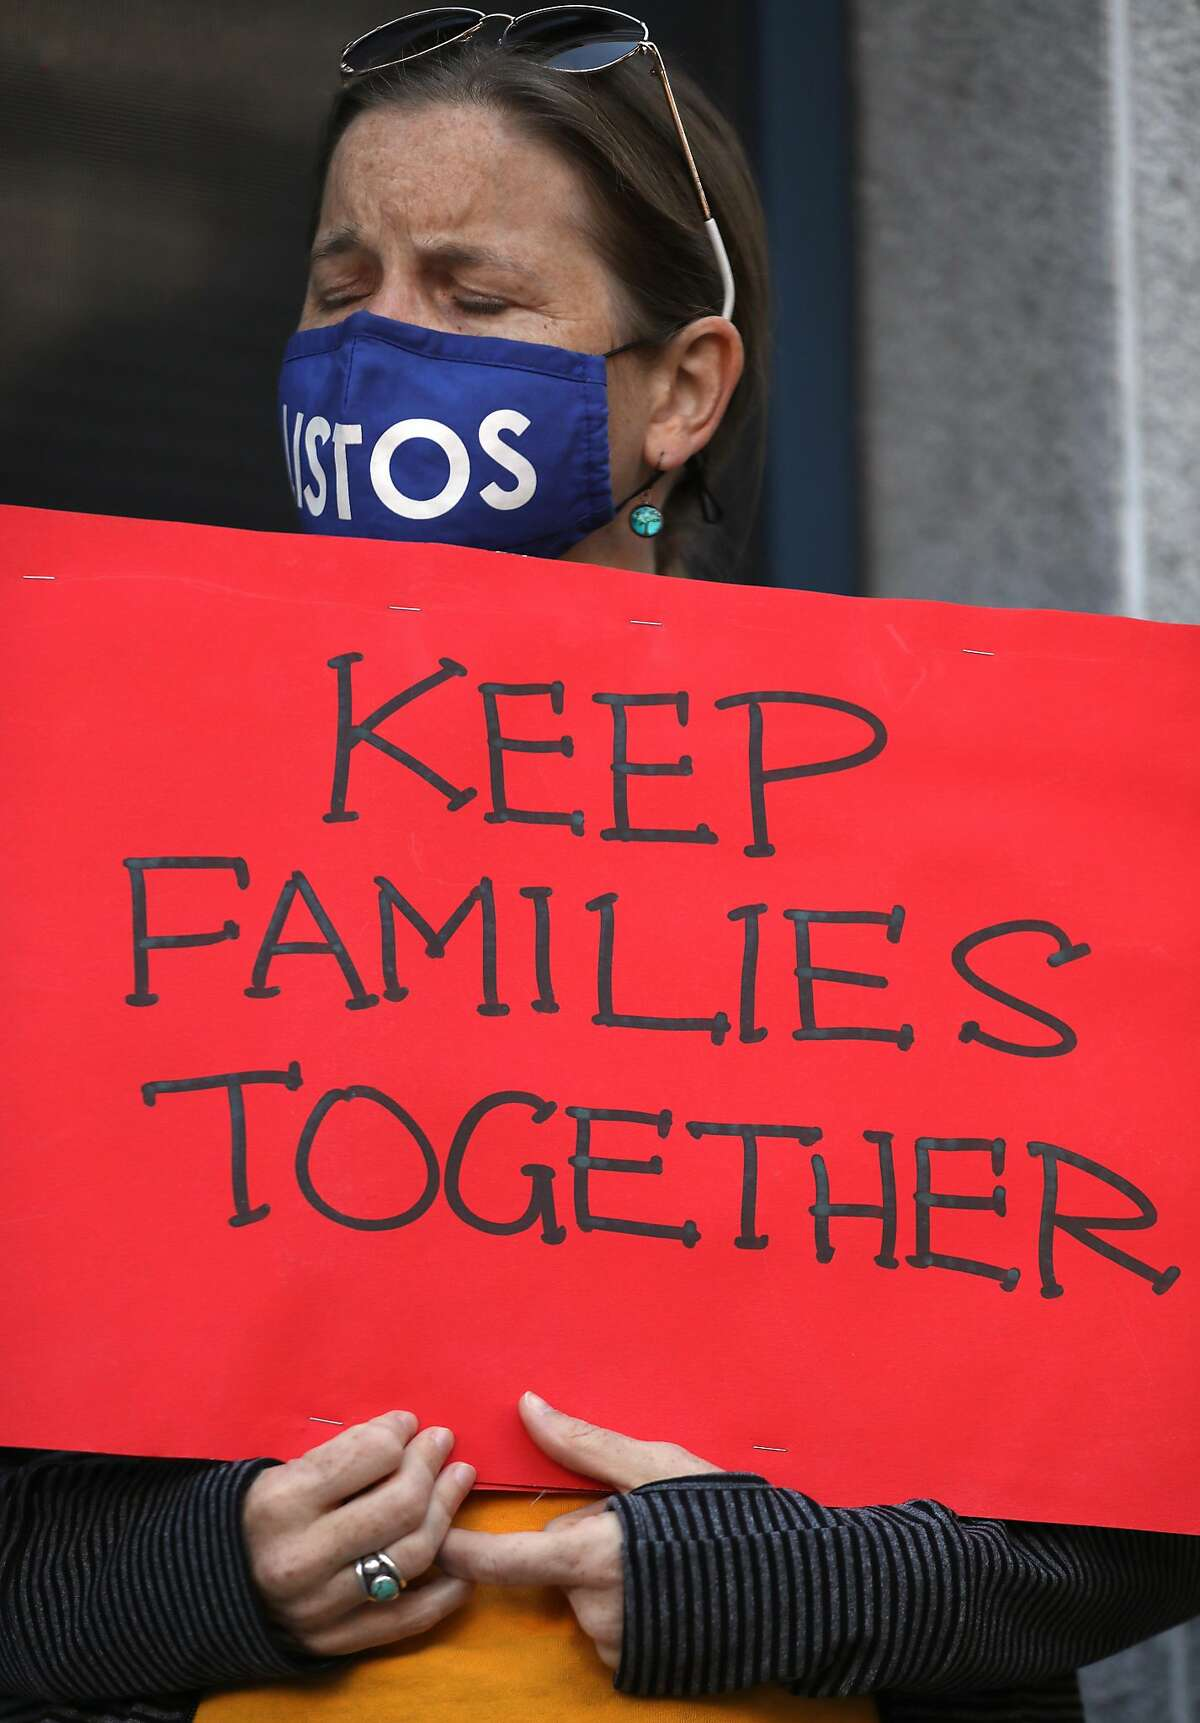 Supporters pray against the deportation of Hugo Aguilar in front of the U.S. immigration office on Tuesday, Oct. 27, 2020, in San Francisco, Calif. Hugo Aguilar has recently been ordered deported in the next 30 days.